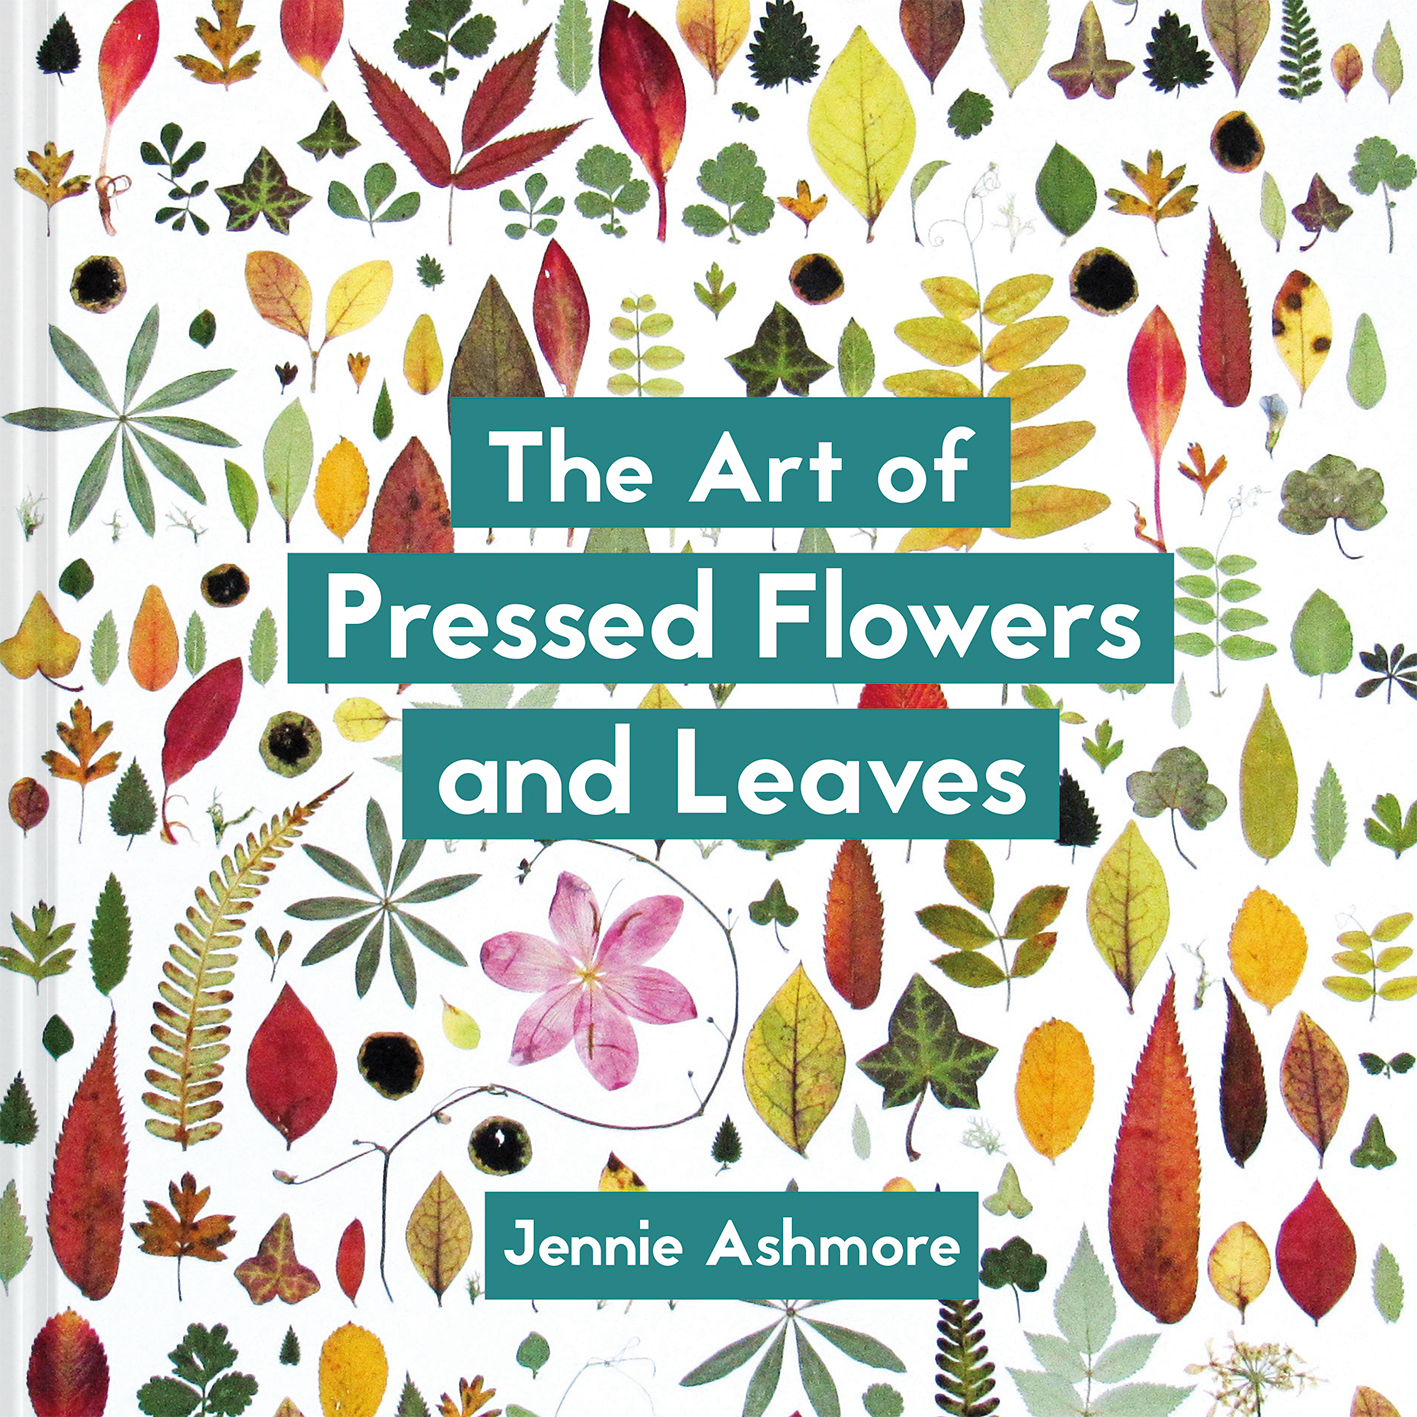 The Art of Pressed Flowers and Leaves